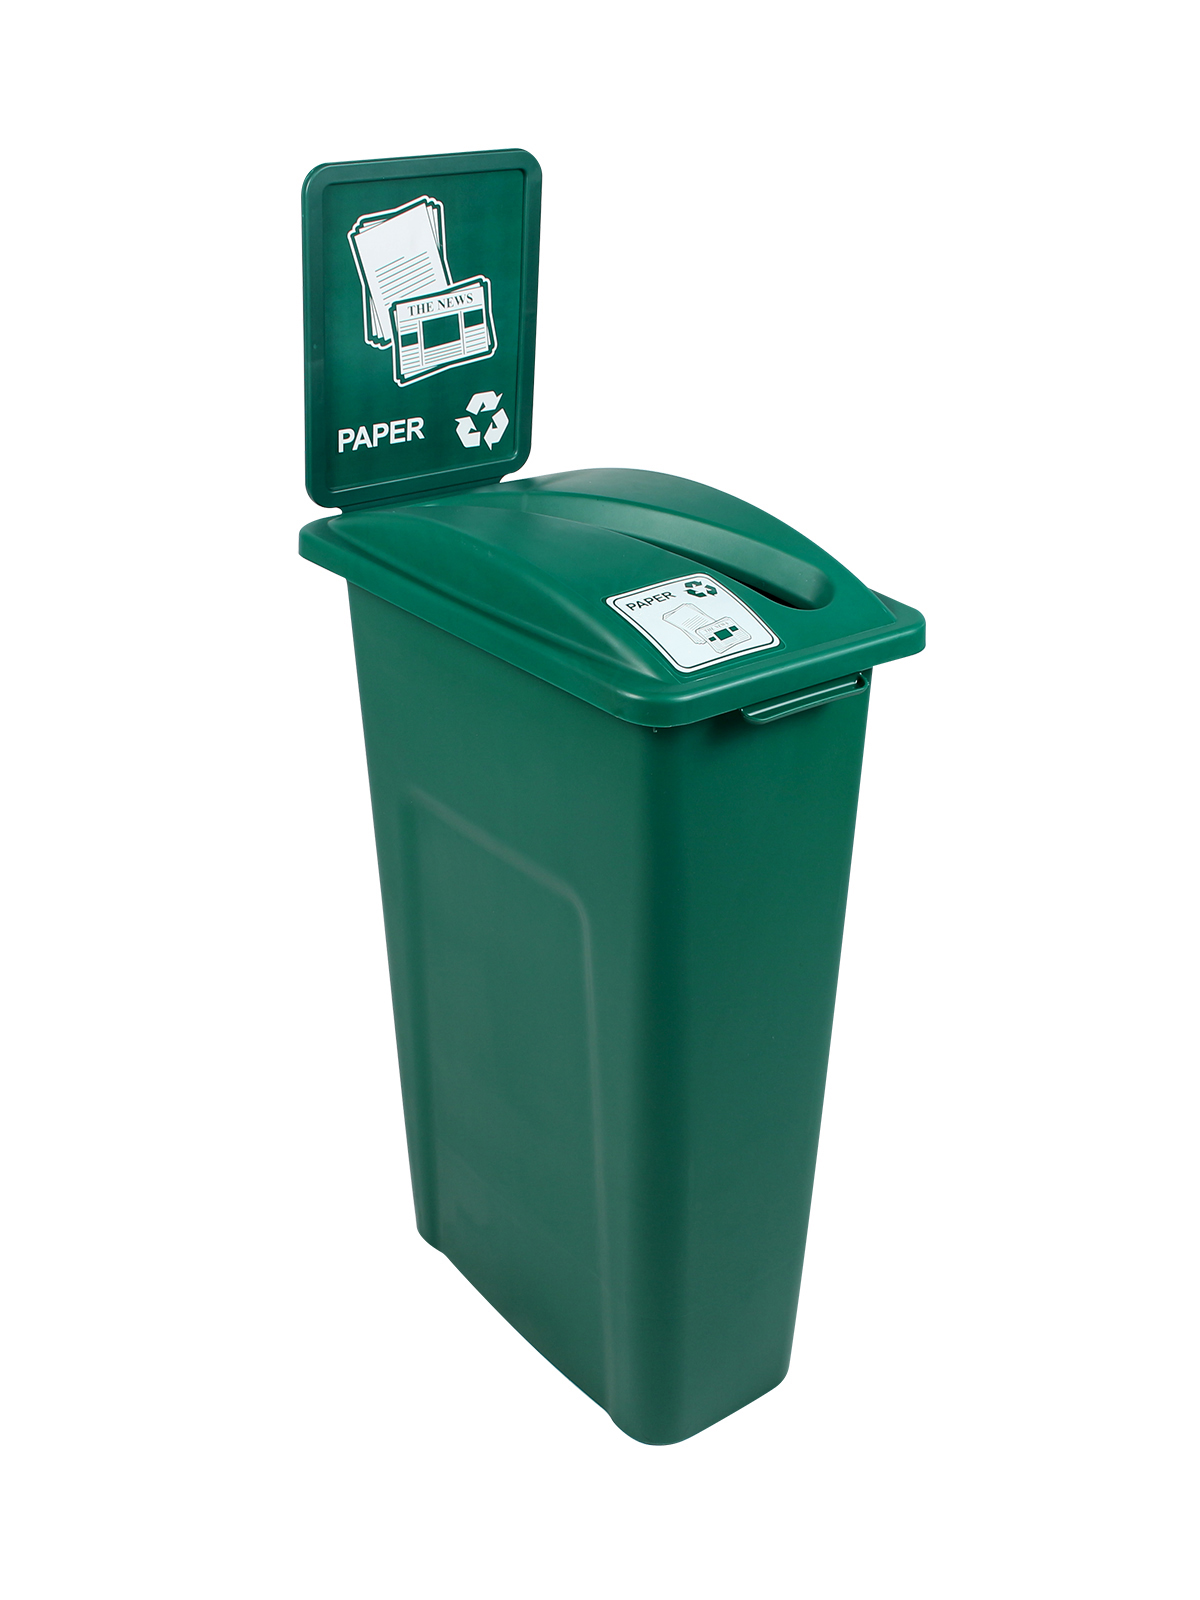 WASTE WATCHER - Single - Paper - Slot - Green